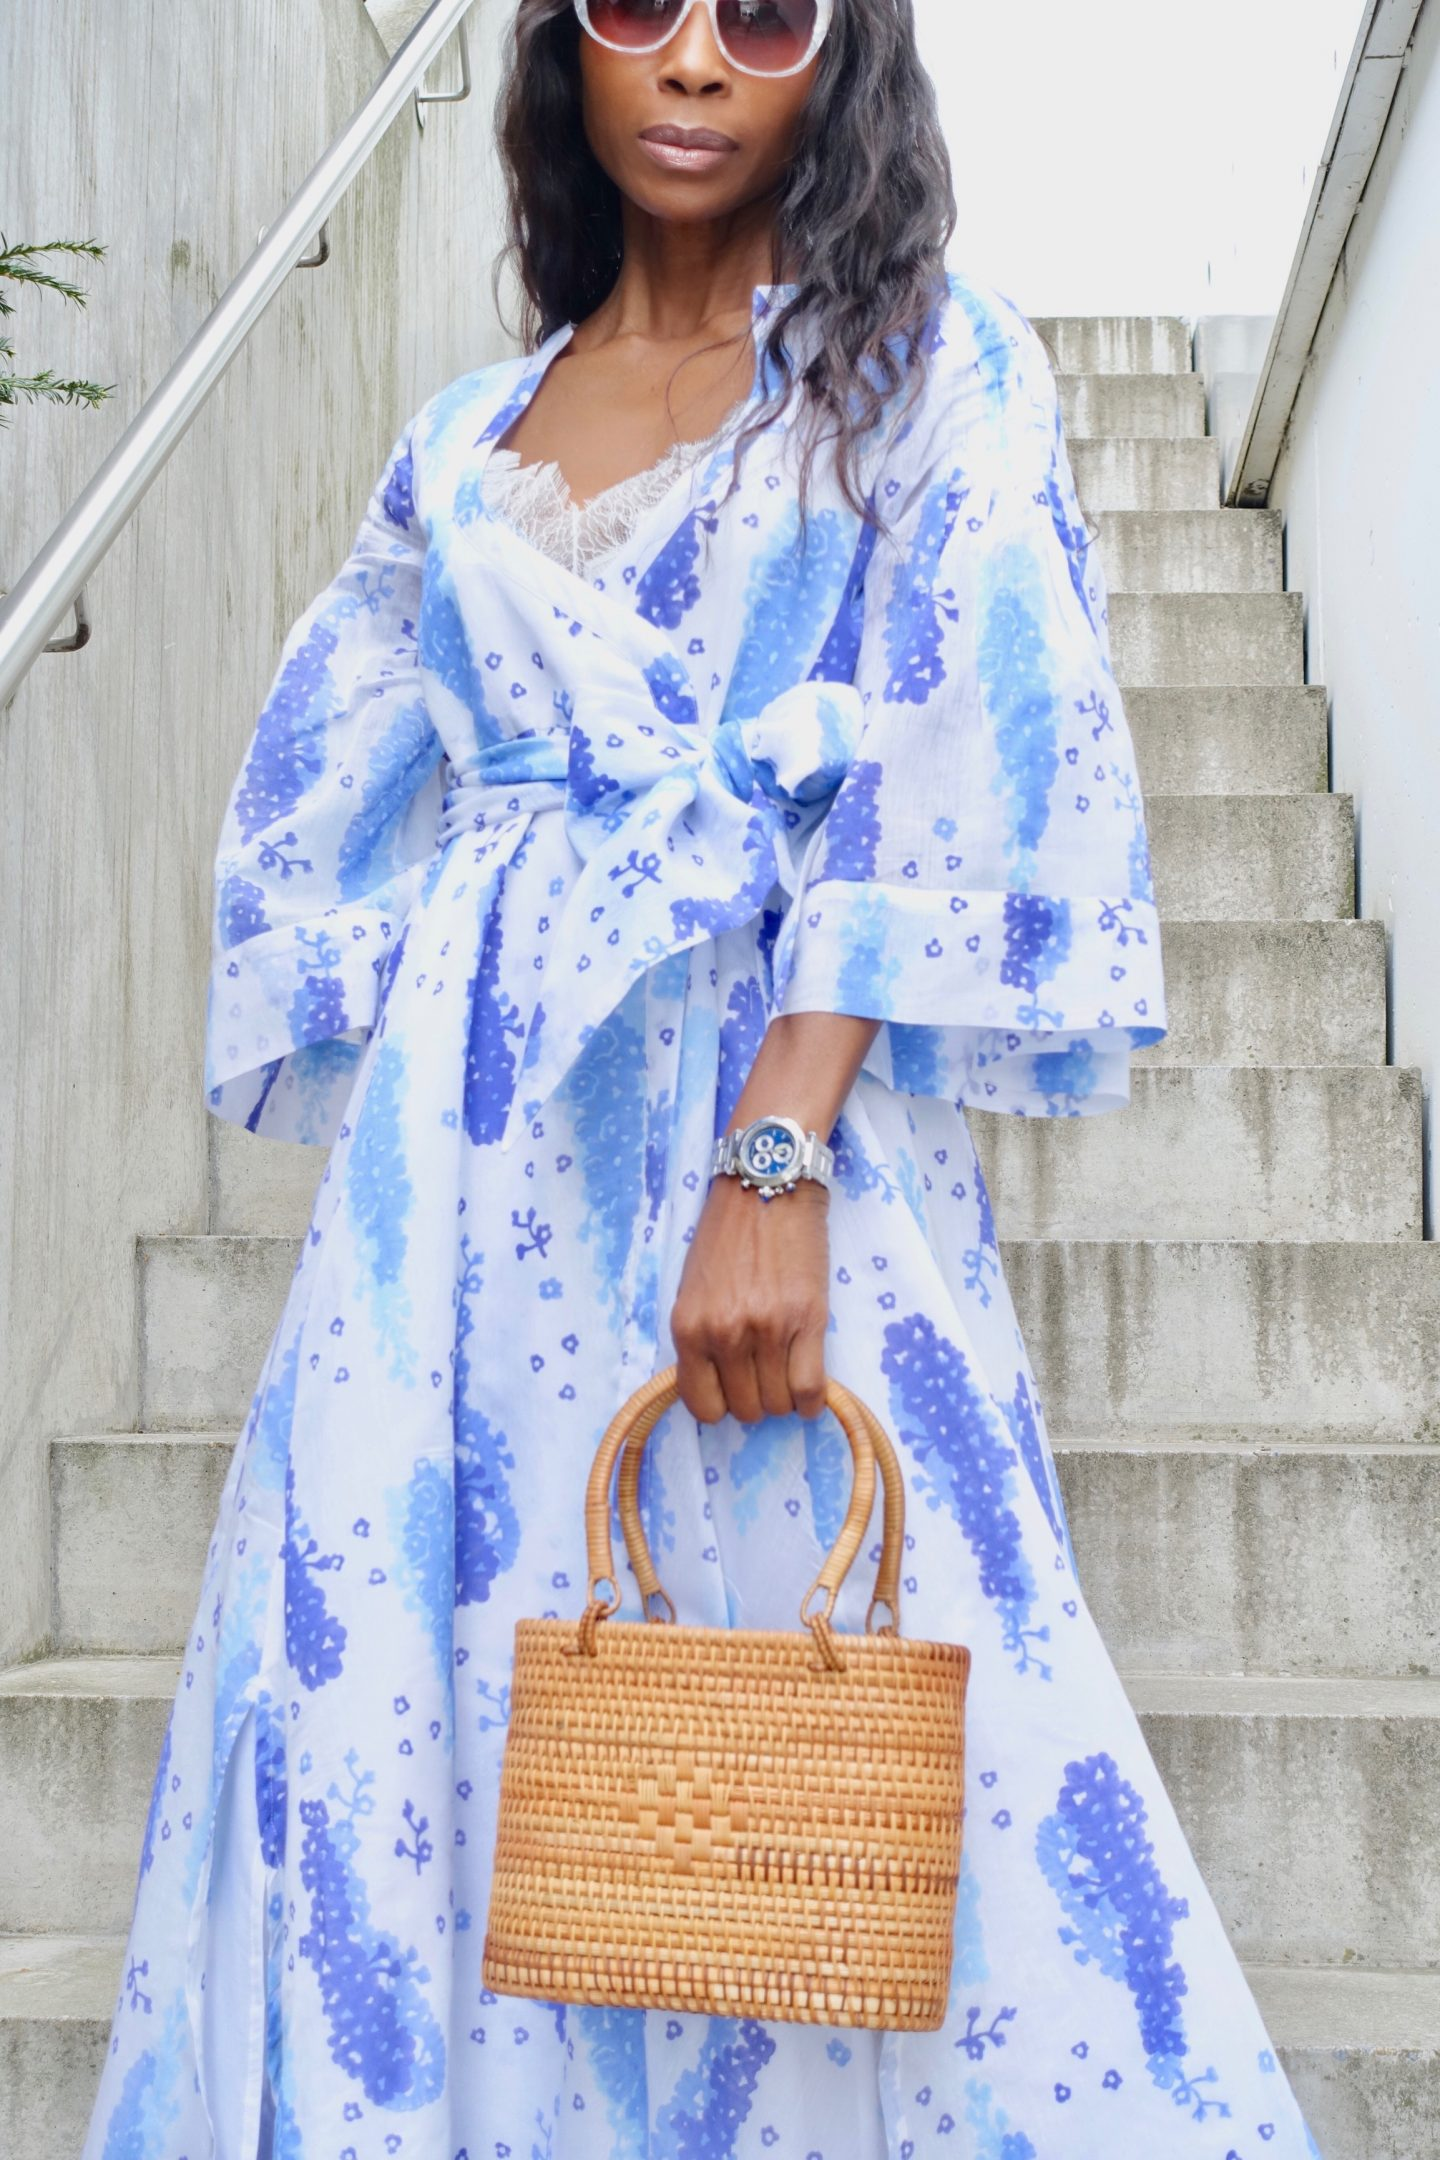 Printed Maxi Dresses For Spring/Summer